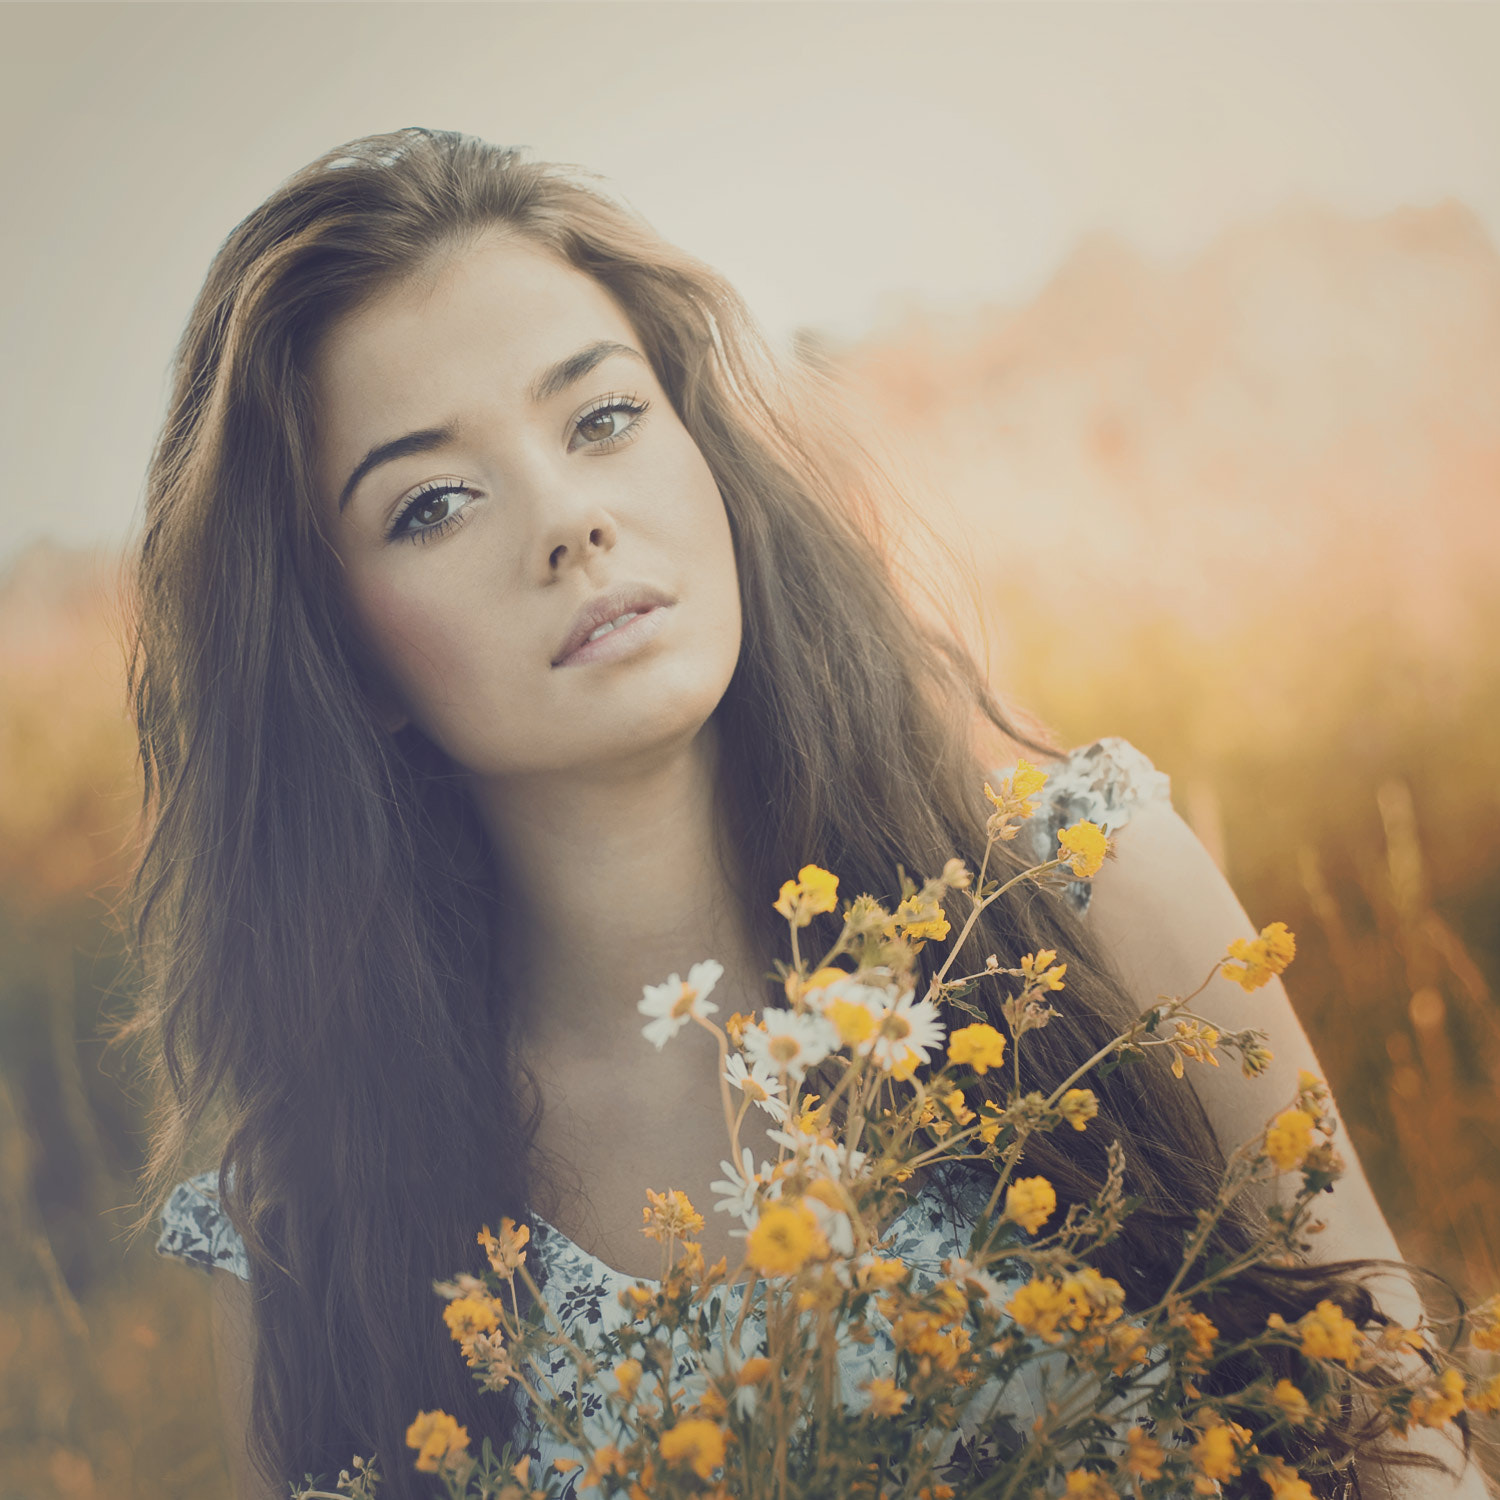 Photograph Ania by Zbigniew Marcin on 500px